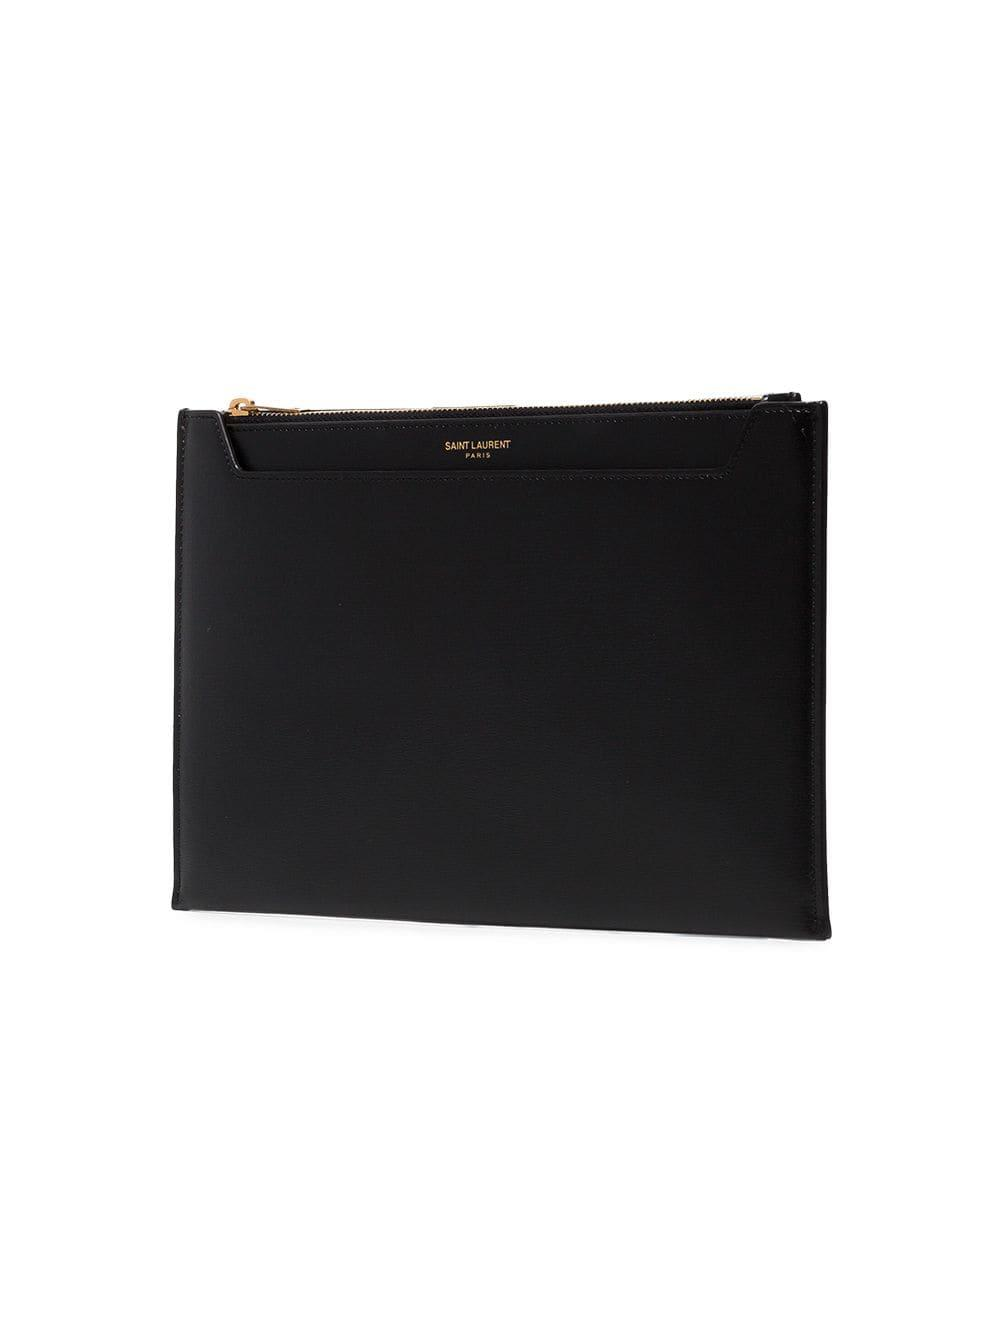 Saint Laurent Leather Logo Stamp Clutch in Black - Lyst 8fbcd14f40a73